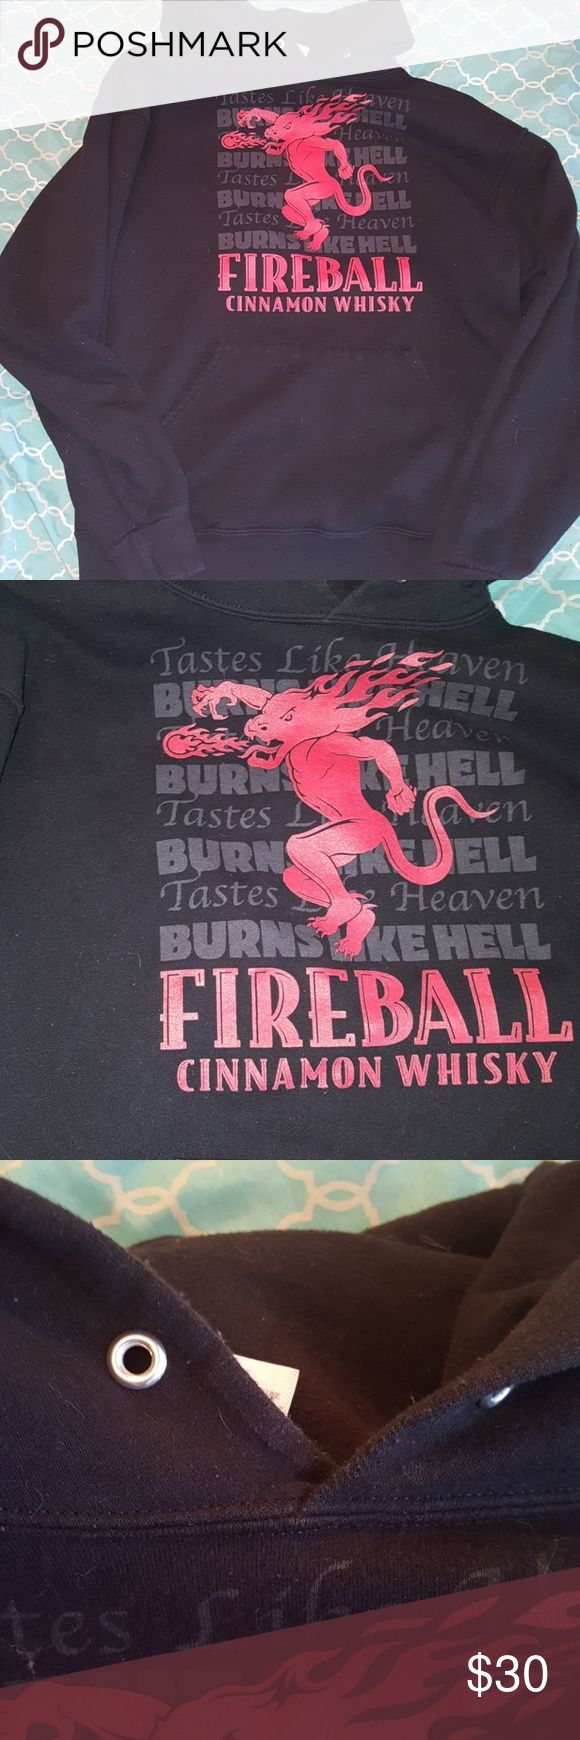 Fireball Cinnamon Whiskey Hoodie Good used condition. Missing draw strings. jerzees Sweaters